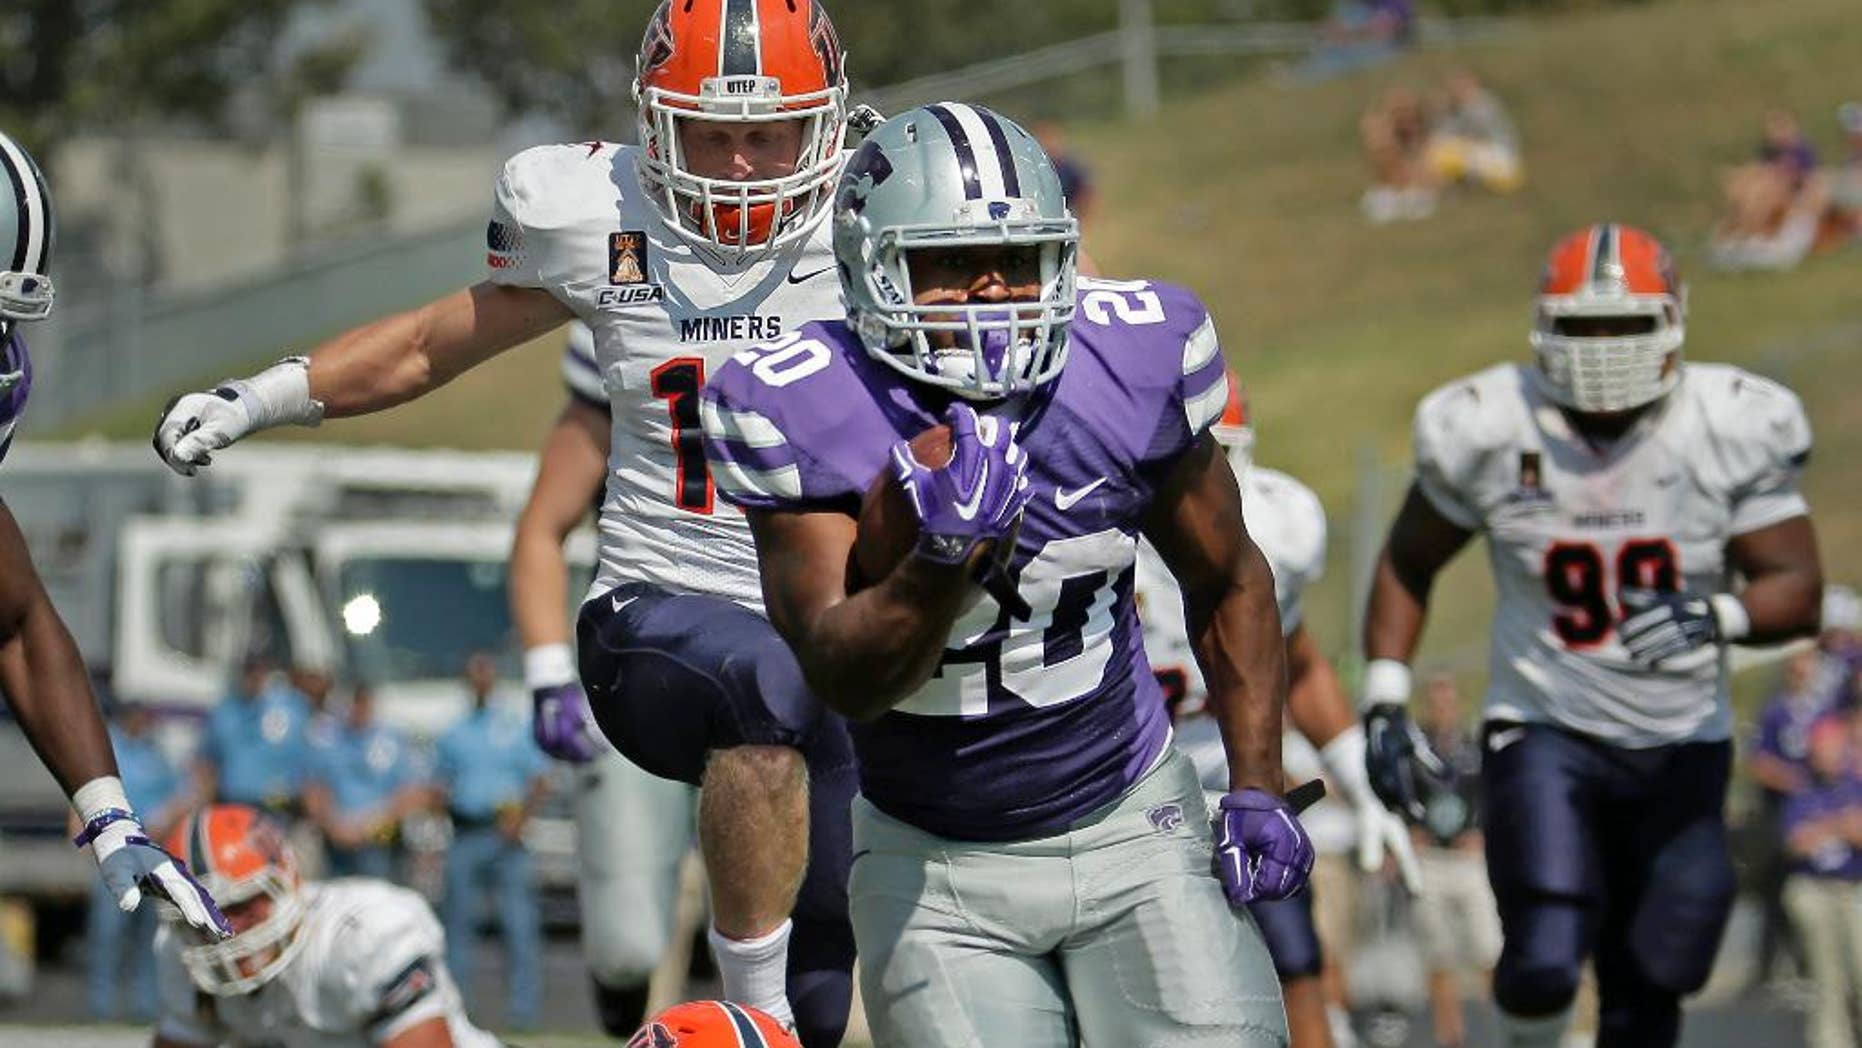 Kansas State running back DeMarcus Robinson (20) is chased by UTEP defenders as he runs for a touchdown during the second half of an NCAA college football game, Saturday, Sept. 27, 2014, in Manhattan, Kan. (AP Photo/Charlie Riedel)